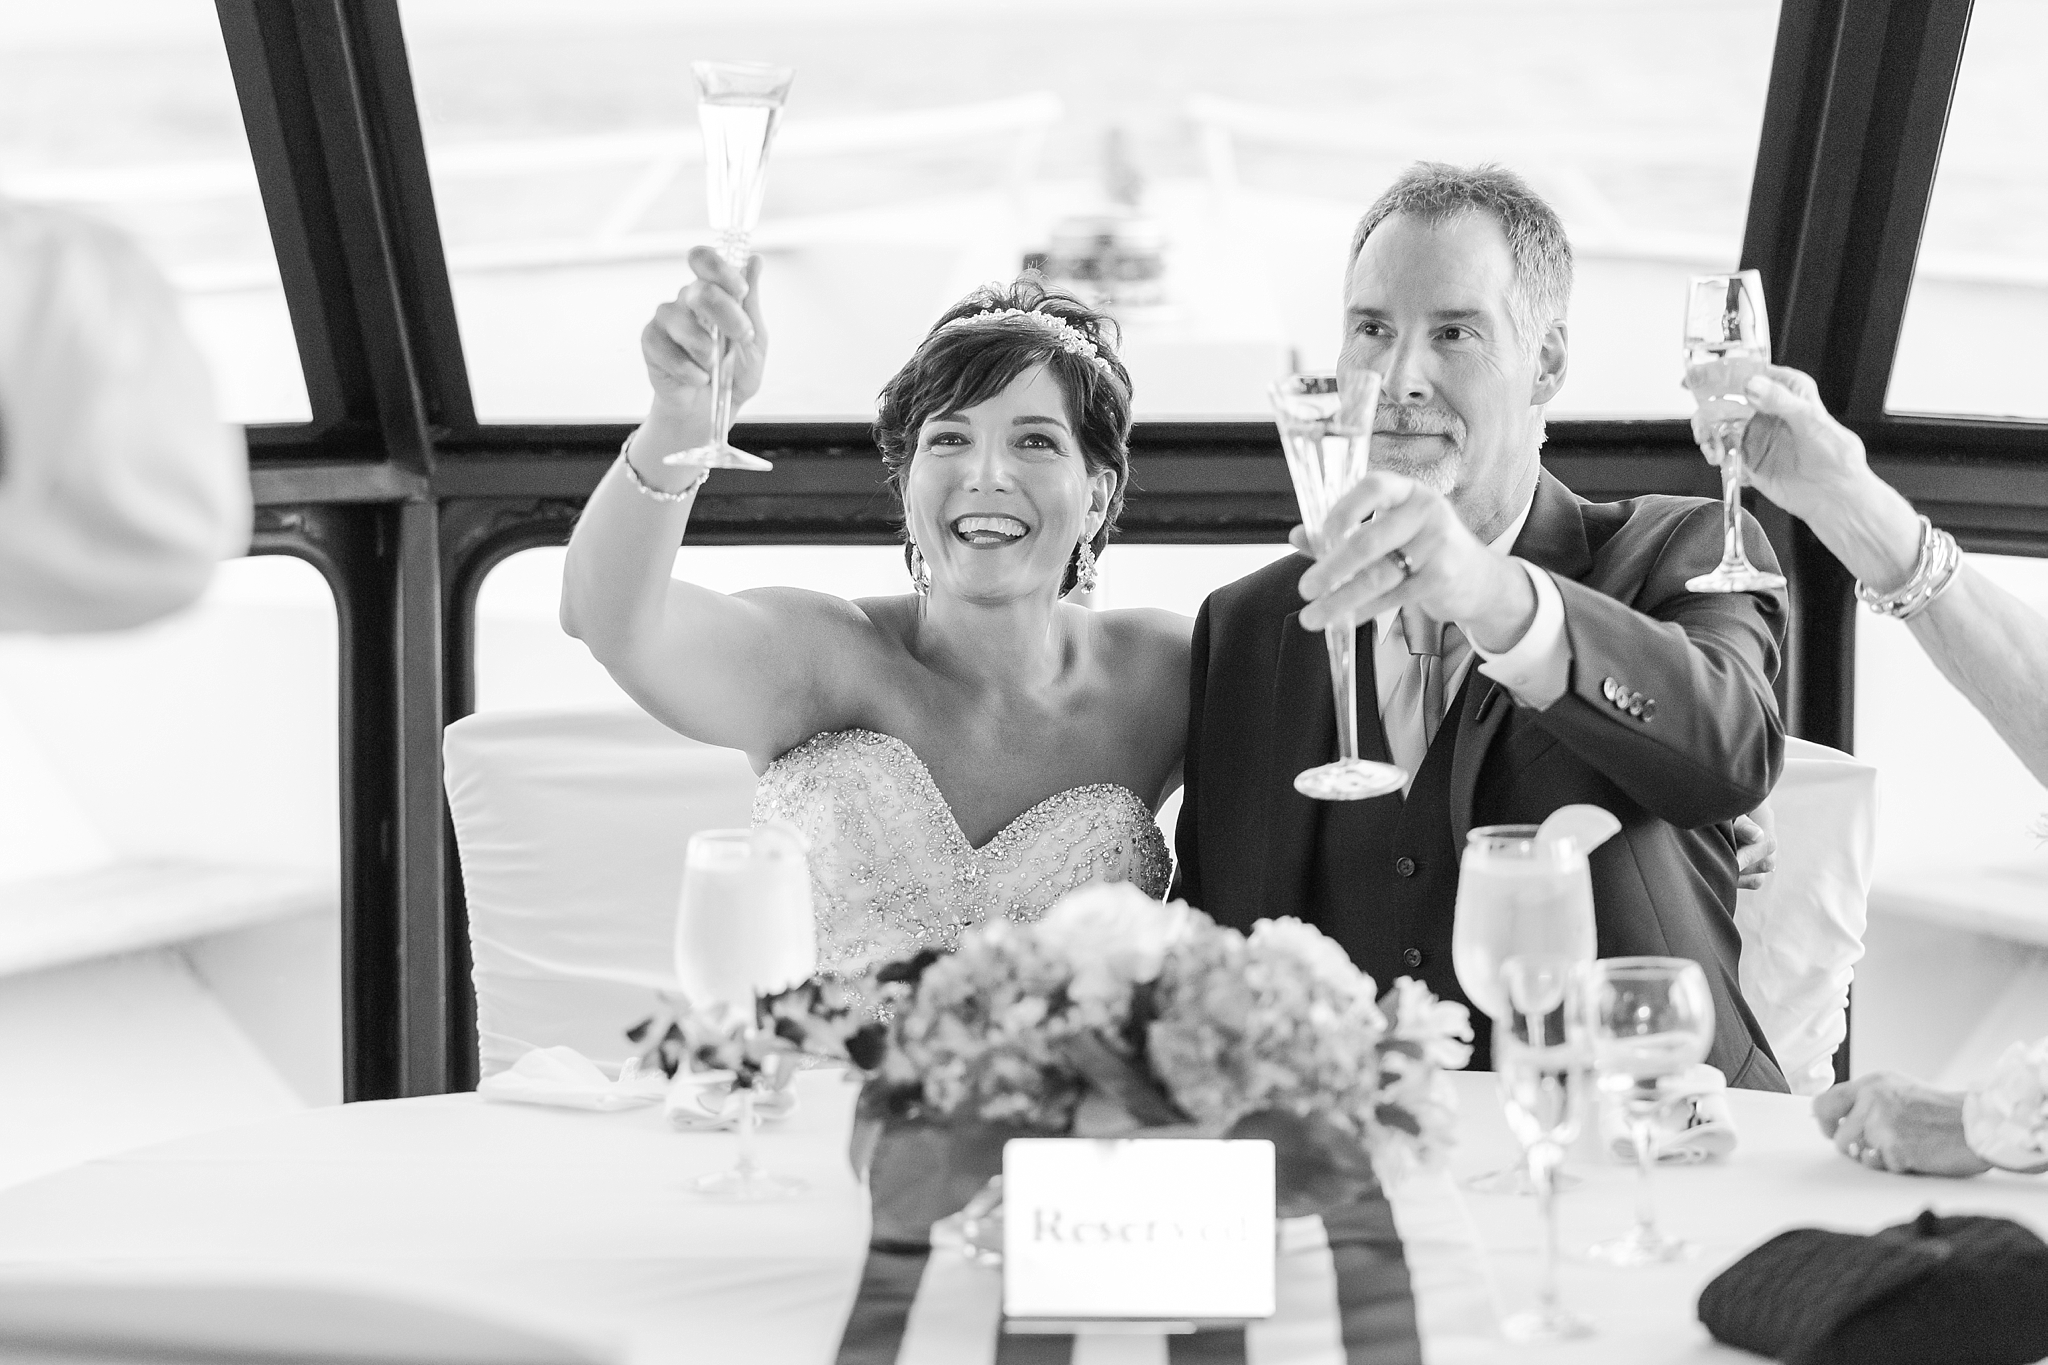 romantic-artful-candid-wedding-photos-in-detroit-lansing-ann-arbor-northern-michigan-and-chicago-by-courtney-carolyn-photography_0035.jpg